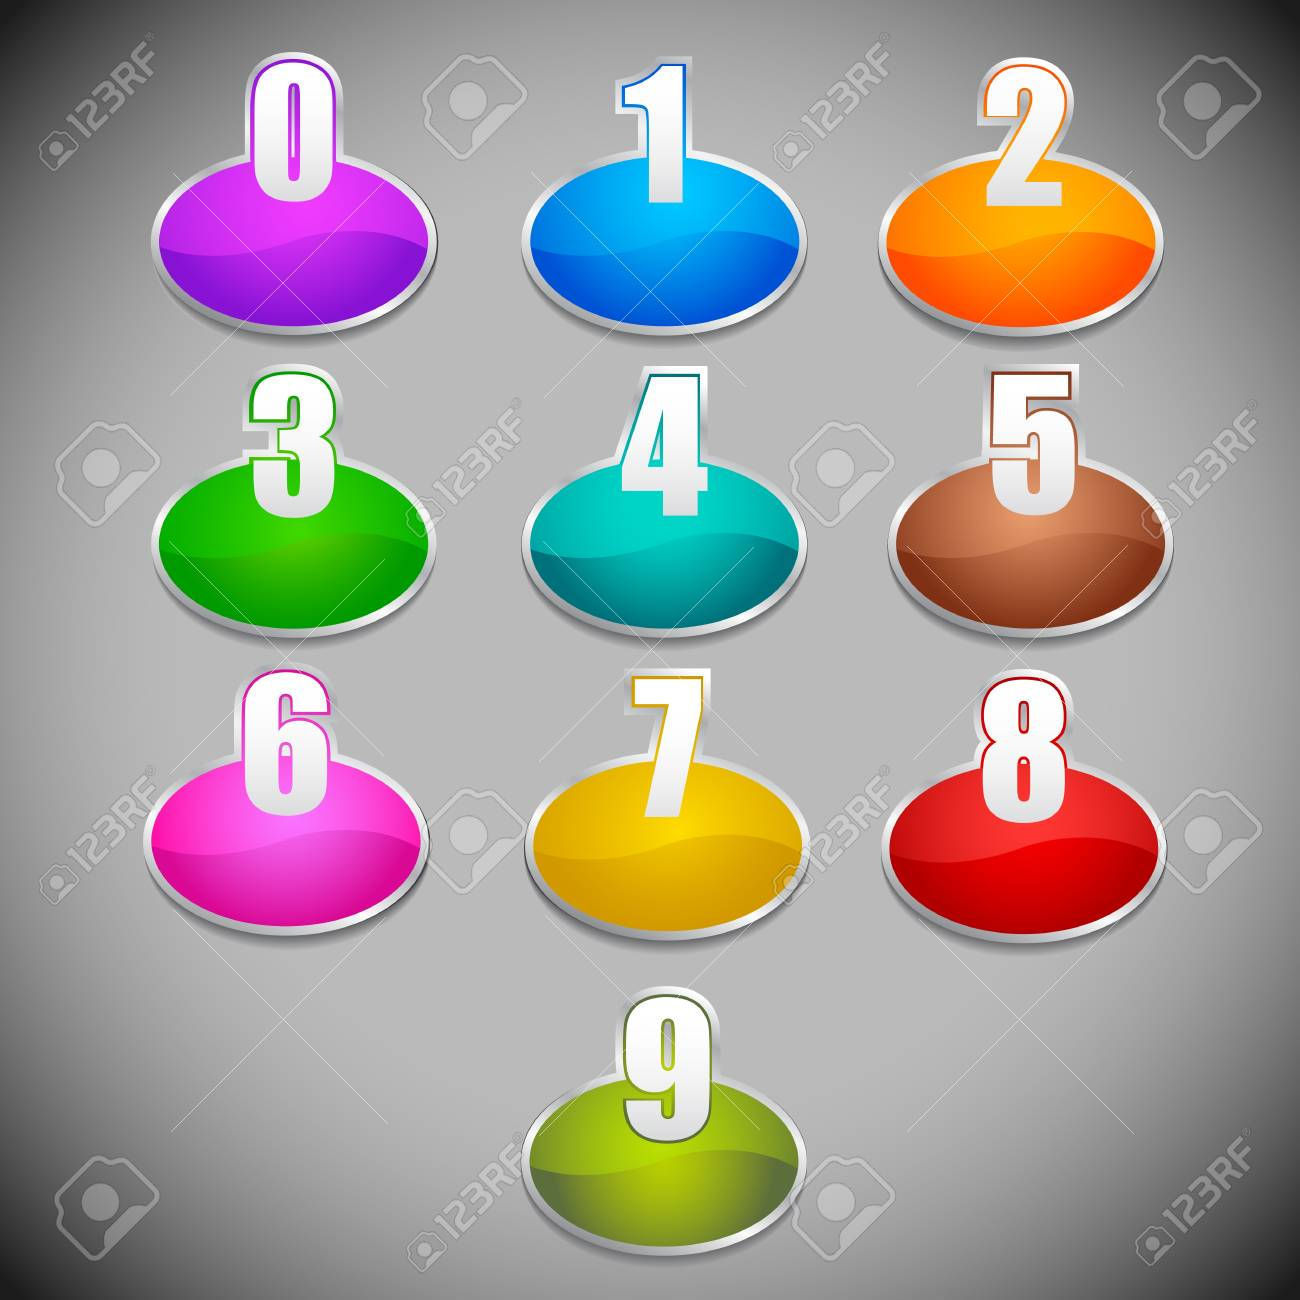 Number Label Stock Vector - 13955583